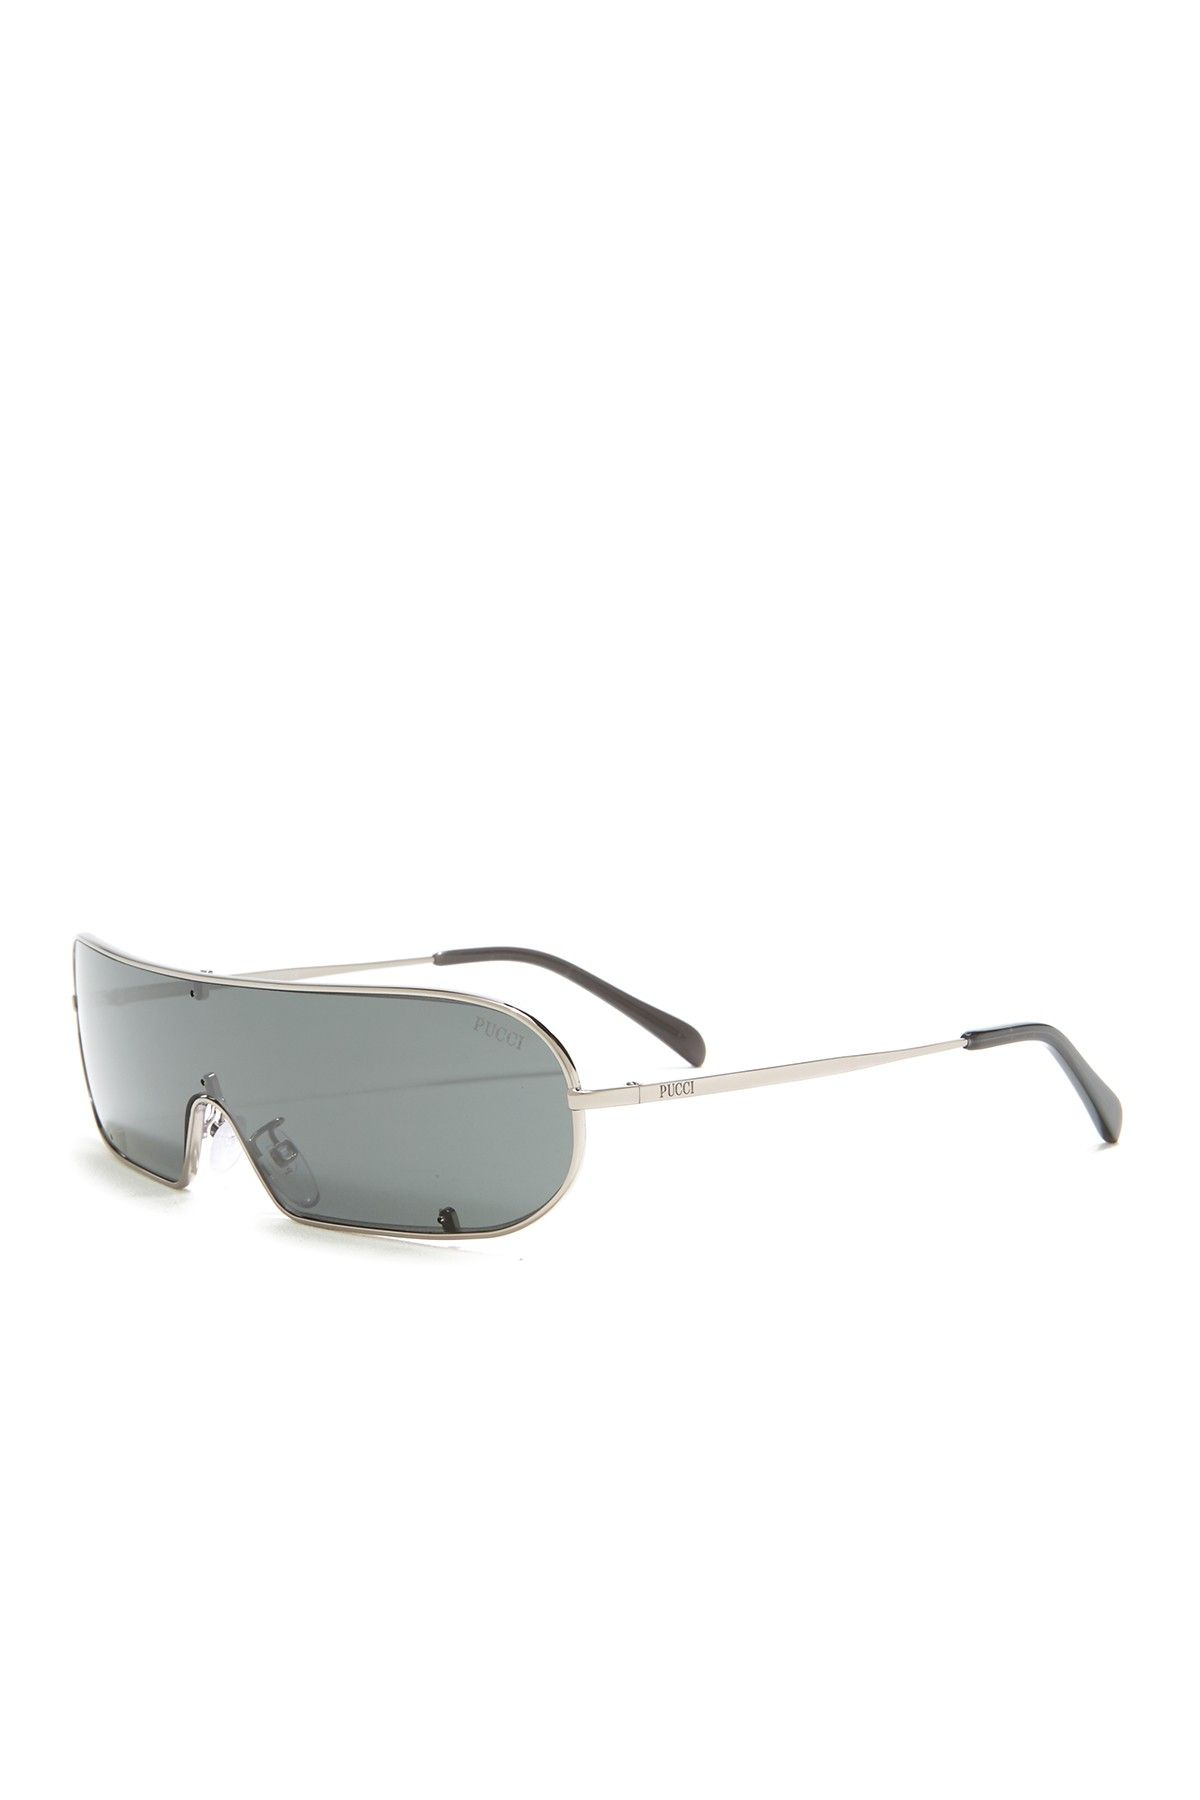 Emilio Pucci | 00mm Shield Sunglasses #nordstromrack